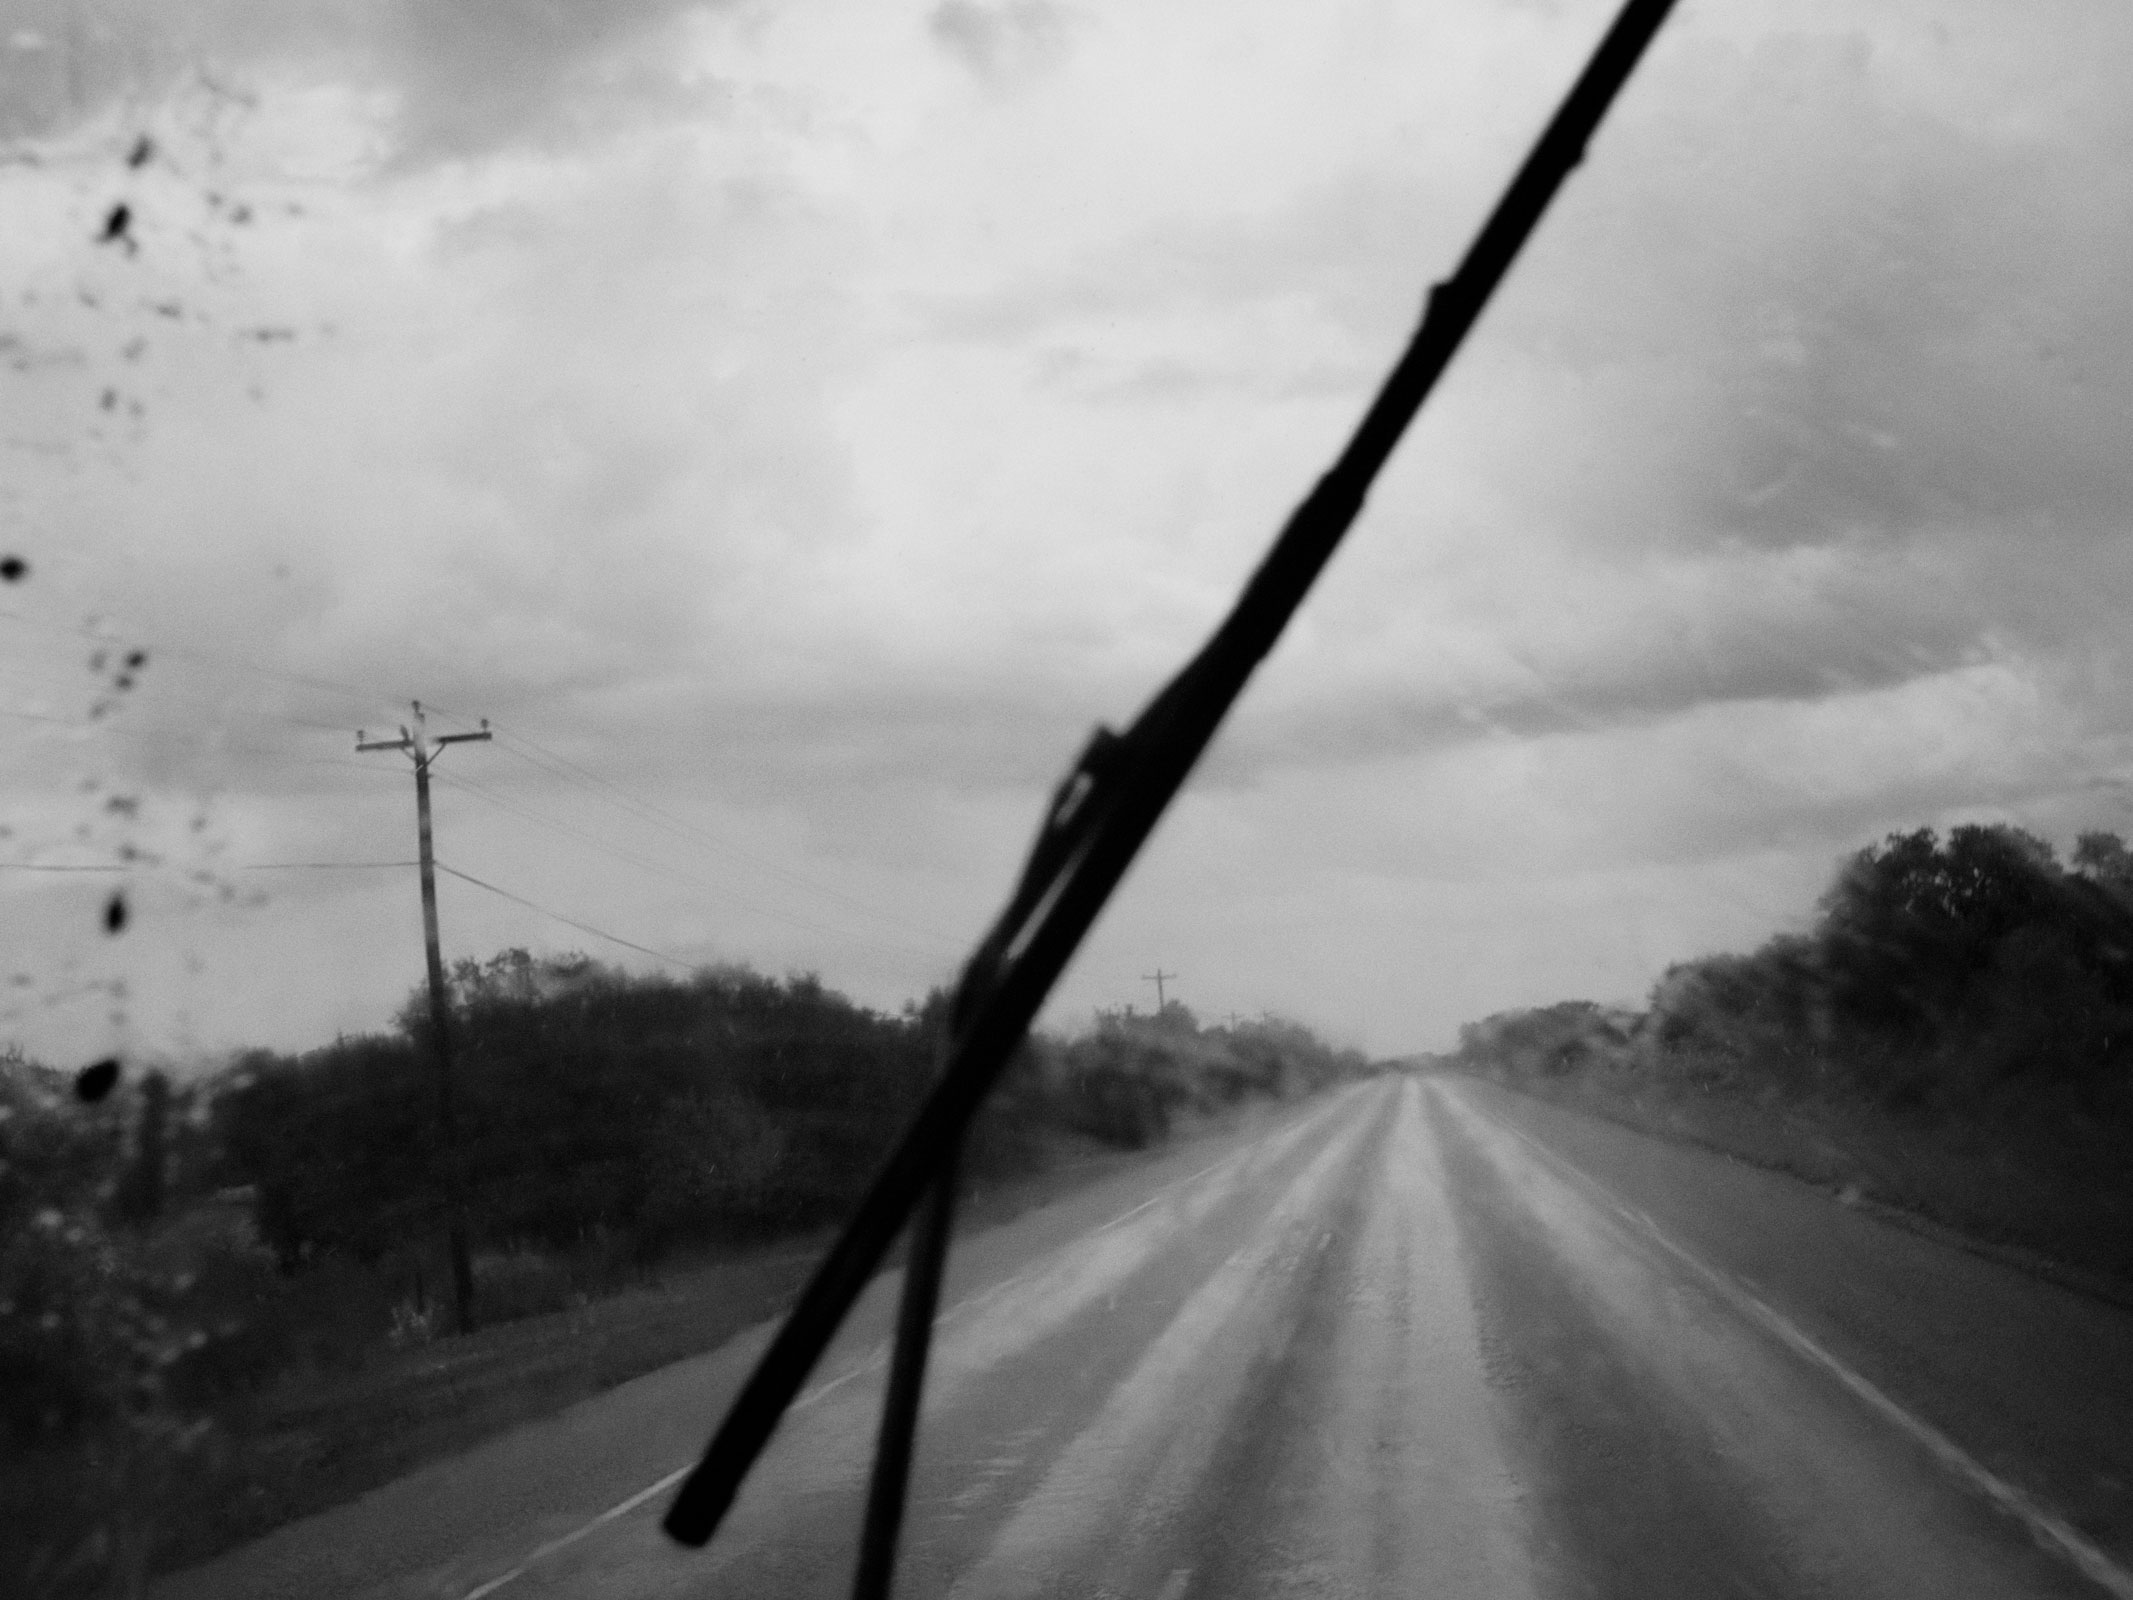 Windshield-Wiper